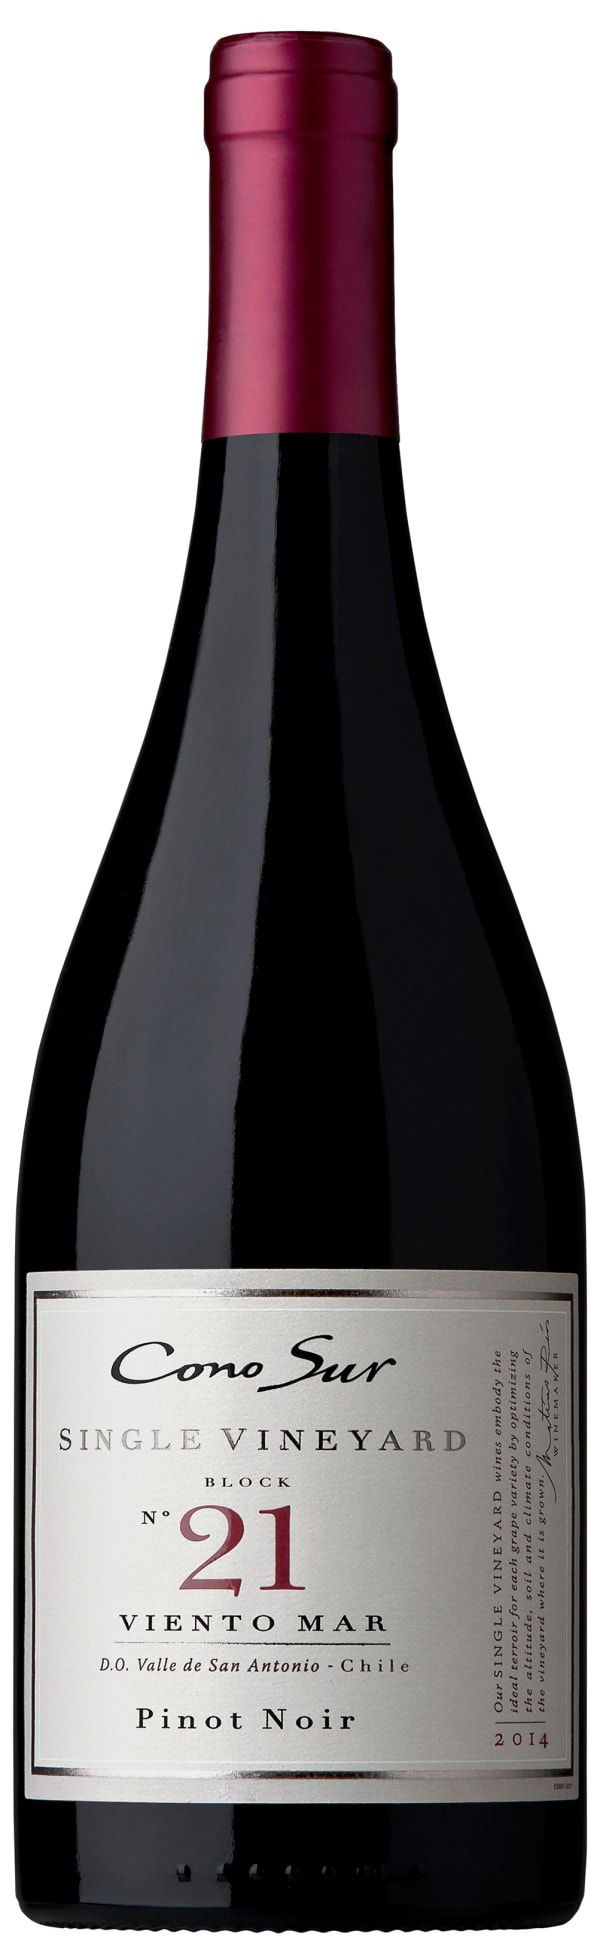 Cono Sur Single Vineyard Block 21 Pinot Noir 2016